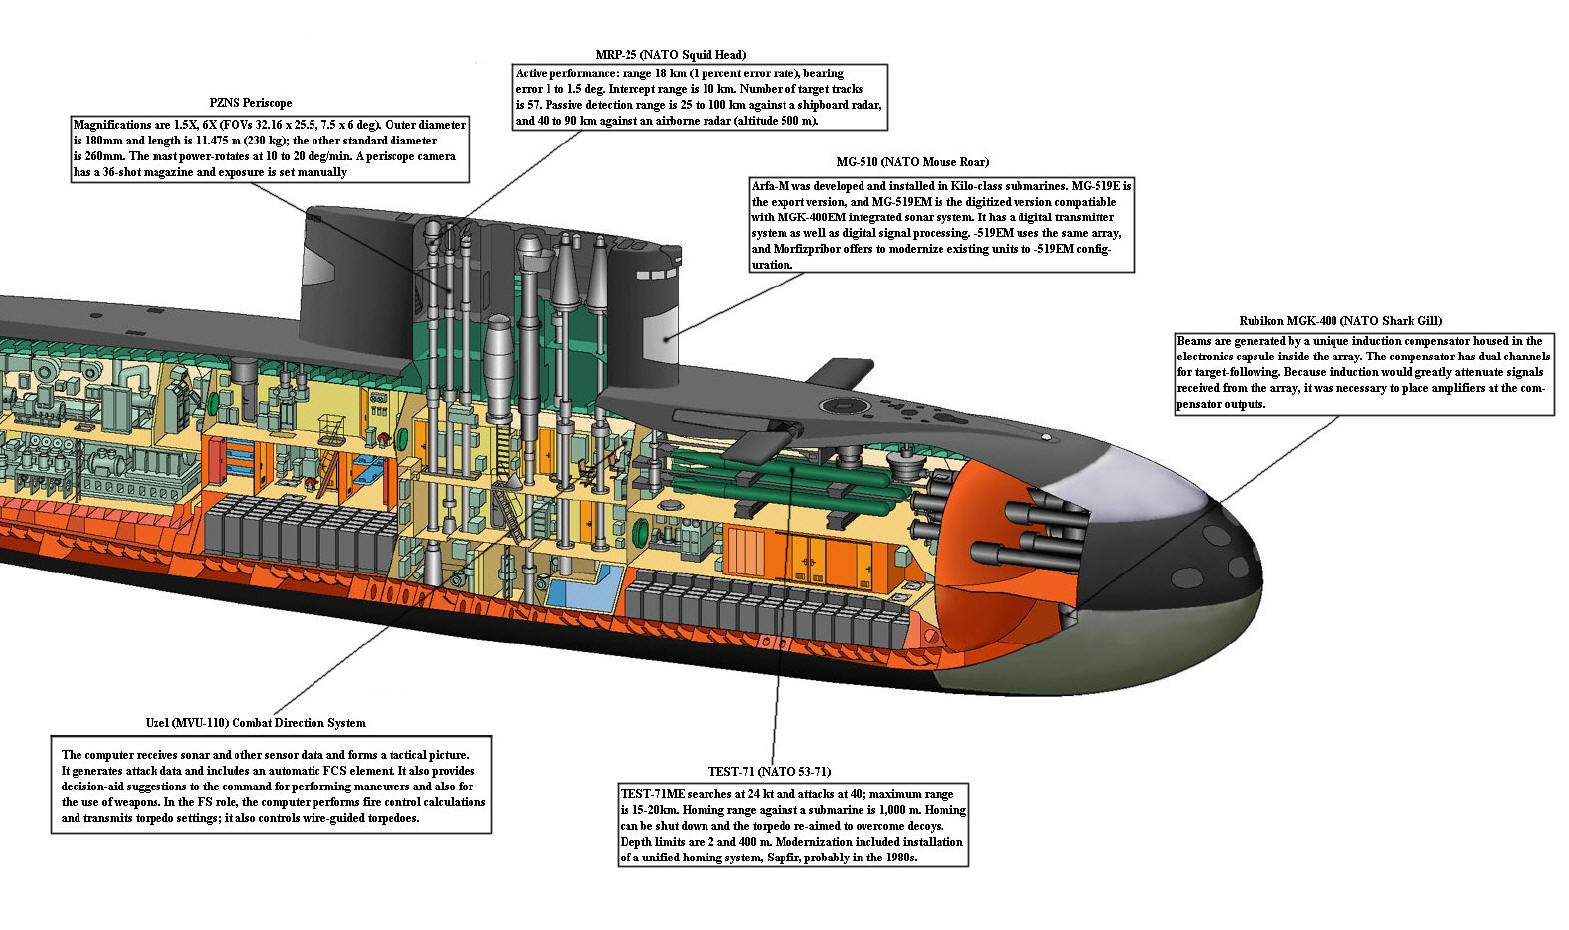 Diagram Of Kilo Sub submarine cutaway drawings seawolf cl ... on ignition schematics, delco radio schematics, missile schematics, type 212 submarine, revolver schematics, battleship schematics, lcd tv schematics, snapper mower schematics, nuclear missile diagram, computer schematics, astute class submarine, nuclear power plant diagram, kilo class submarine, benjamin franklin class submarine, lada class submarine, iphone 6 schematics, oscar class submarine, sierra class submarine, victor class submarine, seawolf class submarine, ham radio schematics, akula class submarine, russian submarine tk-208 dmitri donskoi, whiskey class submarine, delta class submarine, assembly line schematics, virginia class submarine, nuclear sub interior, los angeles class submarine, aircraft carrier schematics, alfa class submarine, november class submarine, backhoe hydraulics schematics, borei class submarine, rocket schematics, vanguard class submarine, nuclear sub reactor, ohio class submarine, vacuum tube schematics,